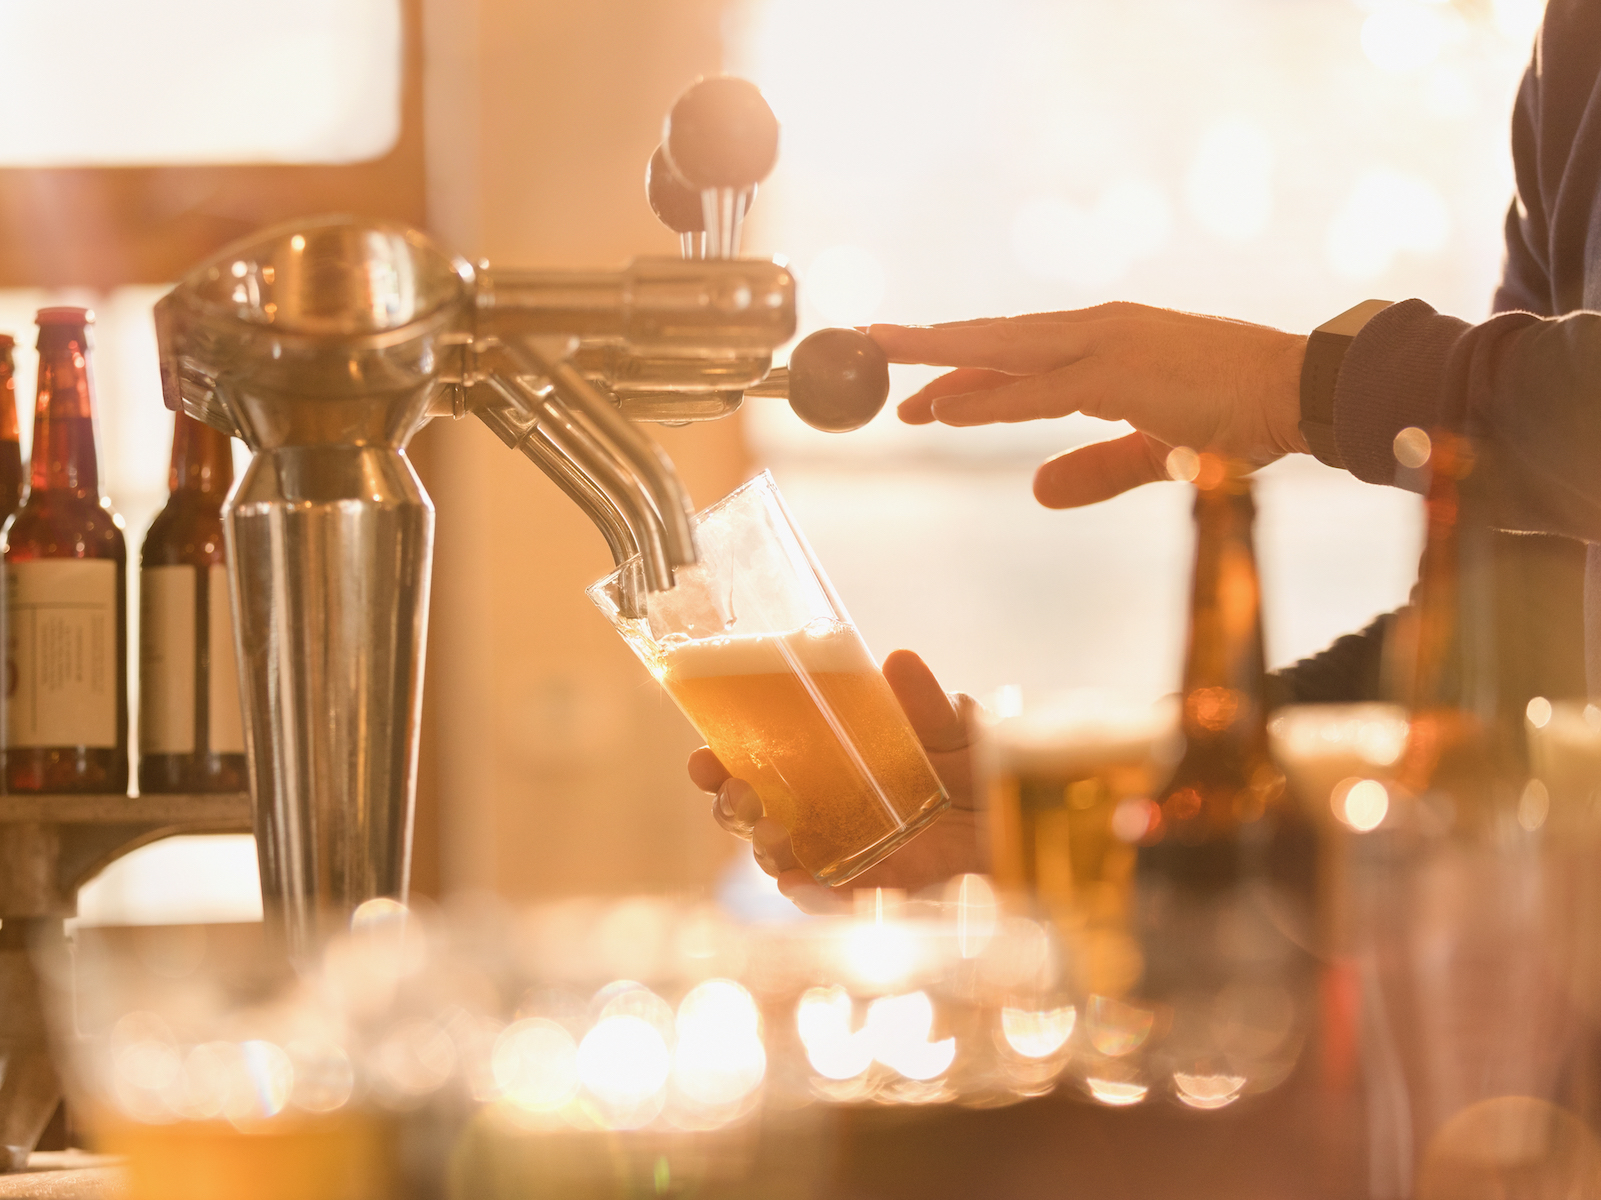 The World's 10 Best Breweries, According to RateBeer